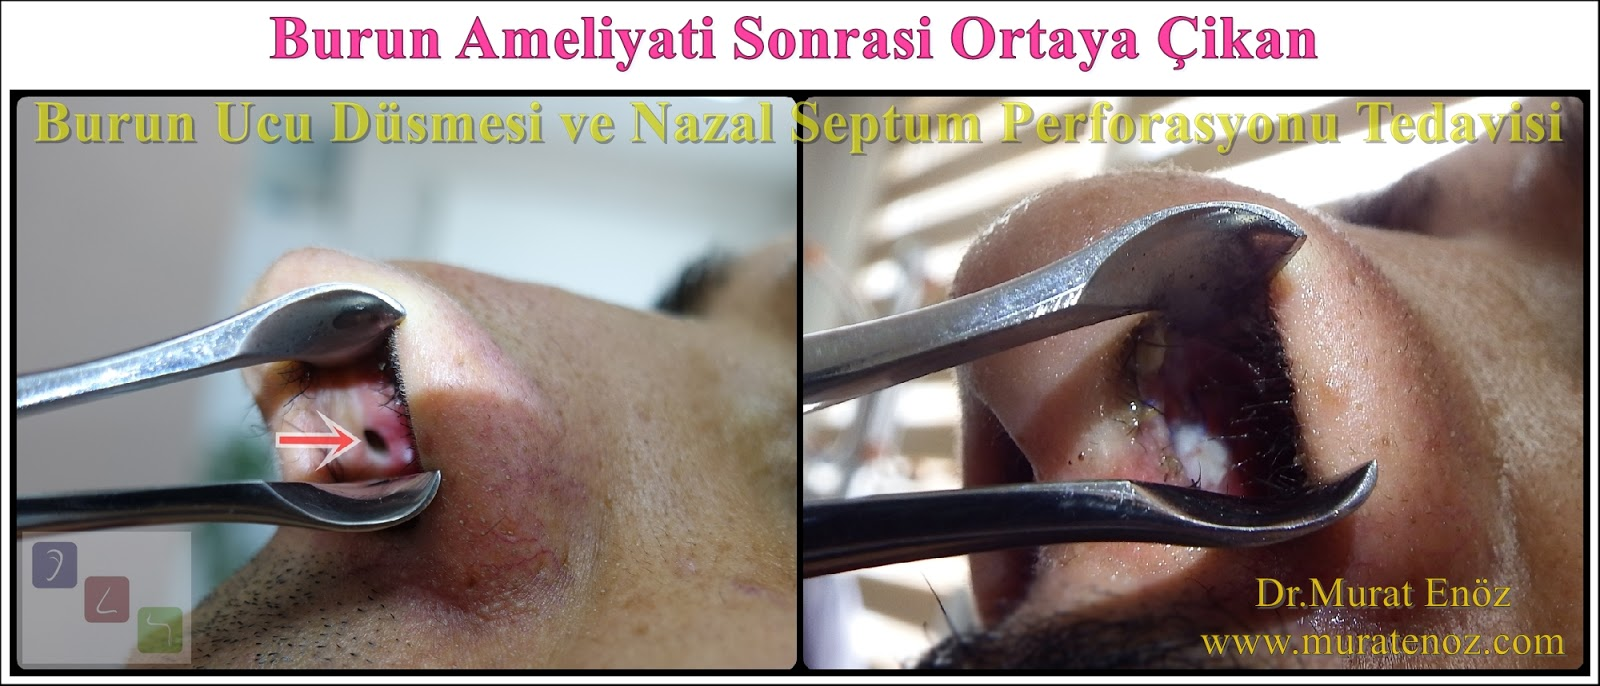 Nazal septum perforasyonu - Septum perforasyonu ameliyatı olanlar - Septum perforasyonu olanlar - Septum perforasyonu ameliyatı yapan doktorlar - Burunda delik oluşumu - Burun duvarında delik - Burun kıkırdak delinmesi tedavisi - Septum perforasyonu ameliyatı olanlar - Septum perforasyonu olanlar - Septal perforasyon tamiri - Septal buton uygulaması - Nazal septum perforasyonu tedavisi - Nazal septum perforasyonu nedenleri - Nazal septum perforasyonu belirtileri - Septum perforasyonun cerrahi onarımı - Burun delinmesinin nedenleri - Nazal septum perforasyonu tanısı - Erkek burun estetiği - Burun estetiği ameliyatı - Definition of Nasal Septal Perforation - Causes of Perforated Nasal Septum - Symptoms of Nasal Septal Perforation - Diagnosis of Nasal Septal Perforation - Surgical Treatment For Nasal Septal Perforation - Nasal Septal Perforation Repair - Surgical Repair of Nasal Septal Perforation